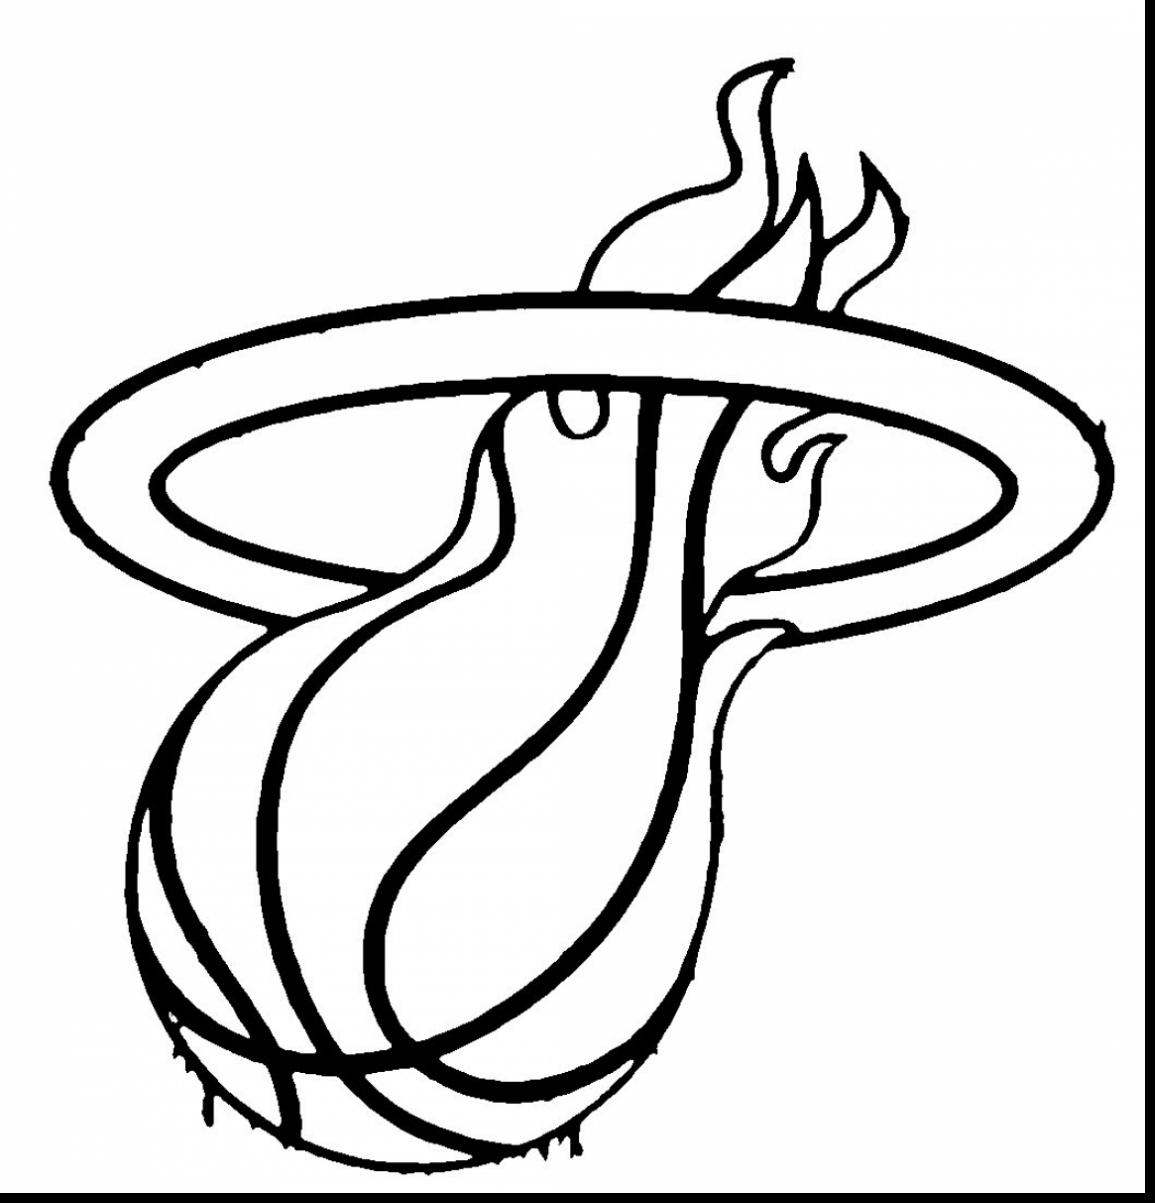 1155x1203 Excellent Nba Logo Coloring Pages With Lebron James Coloring Pages